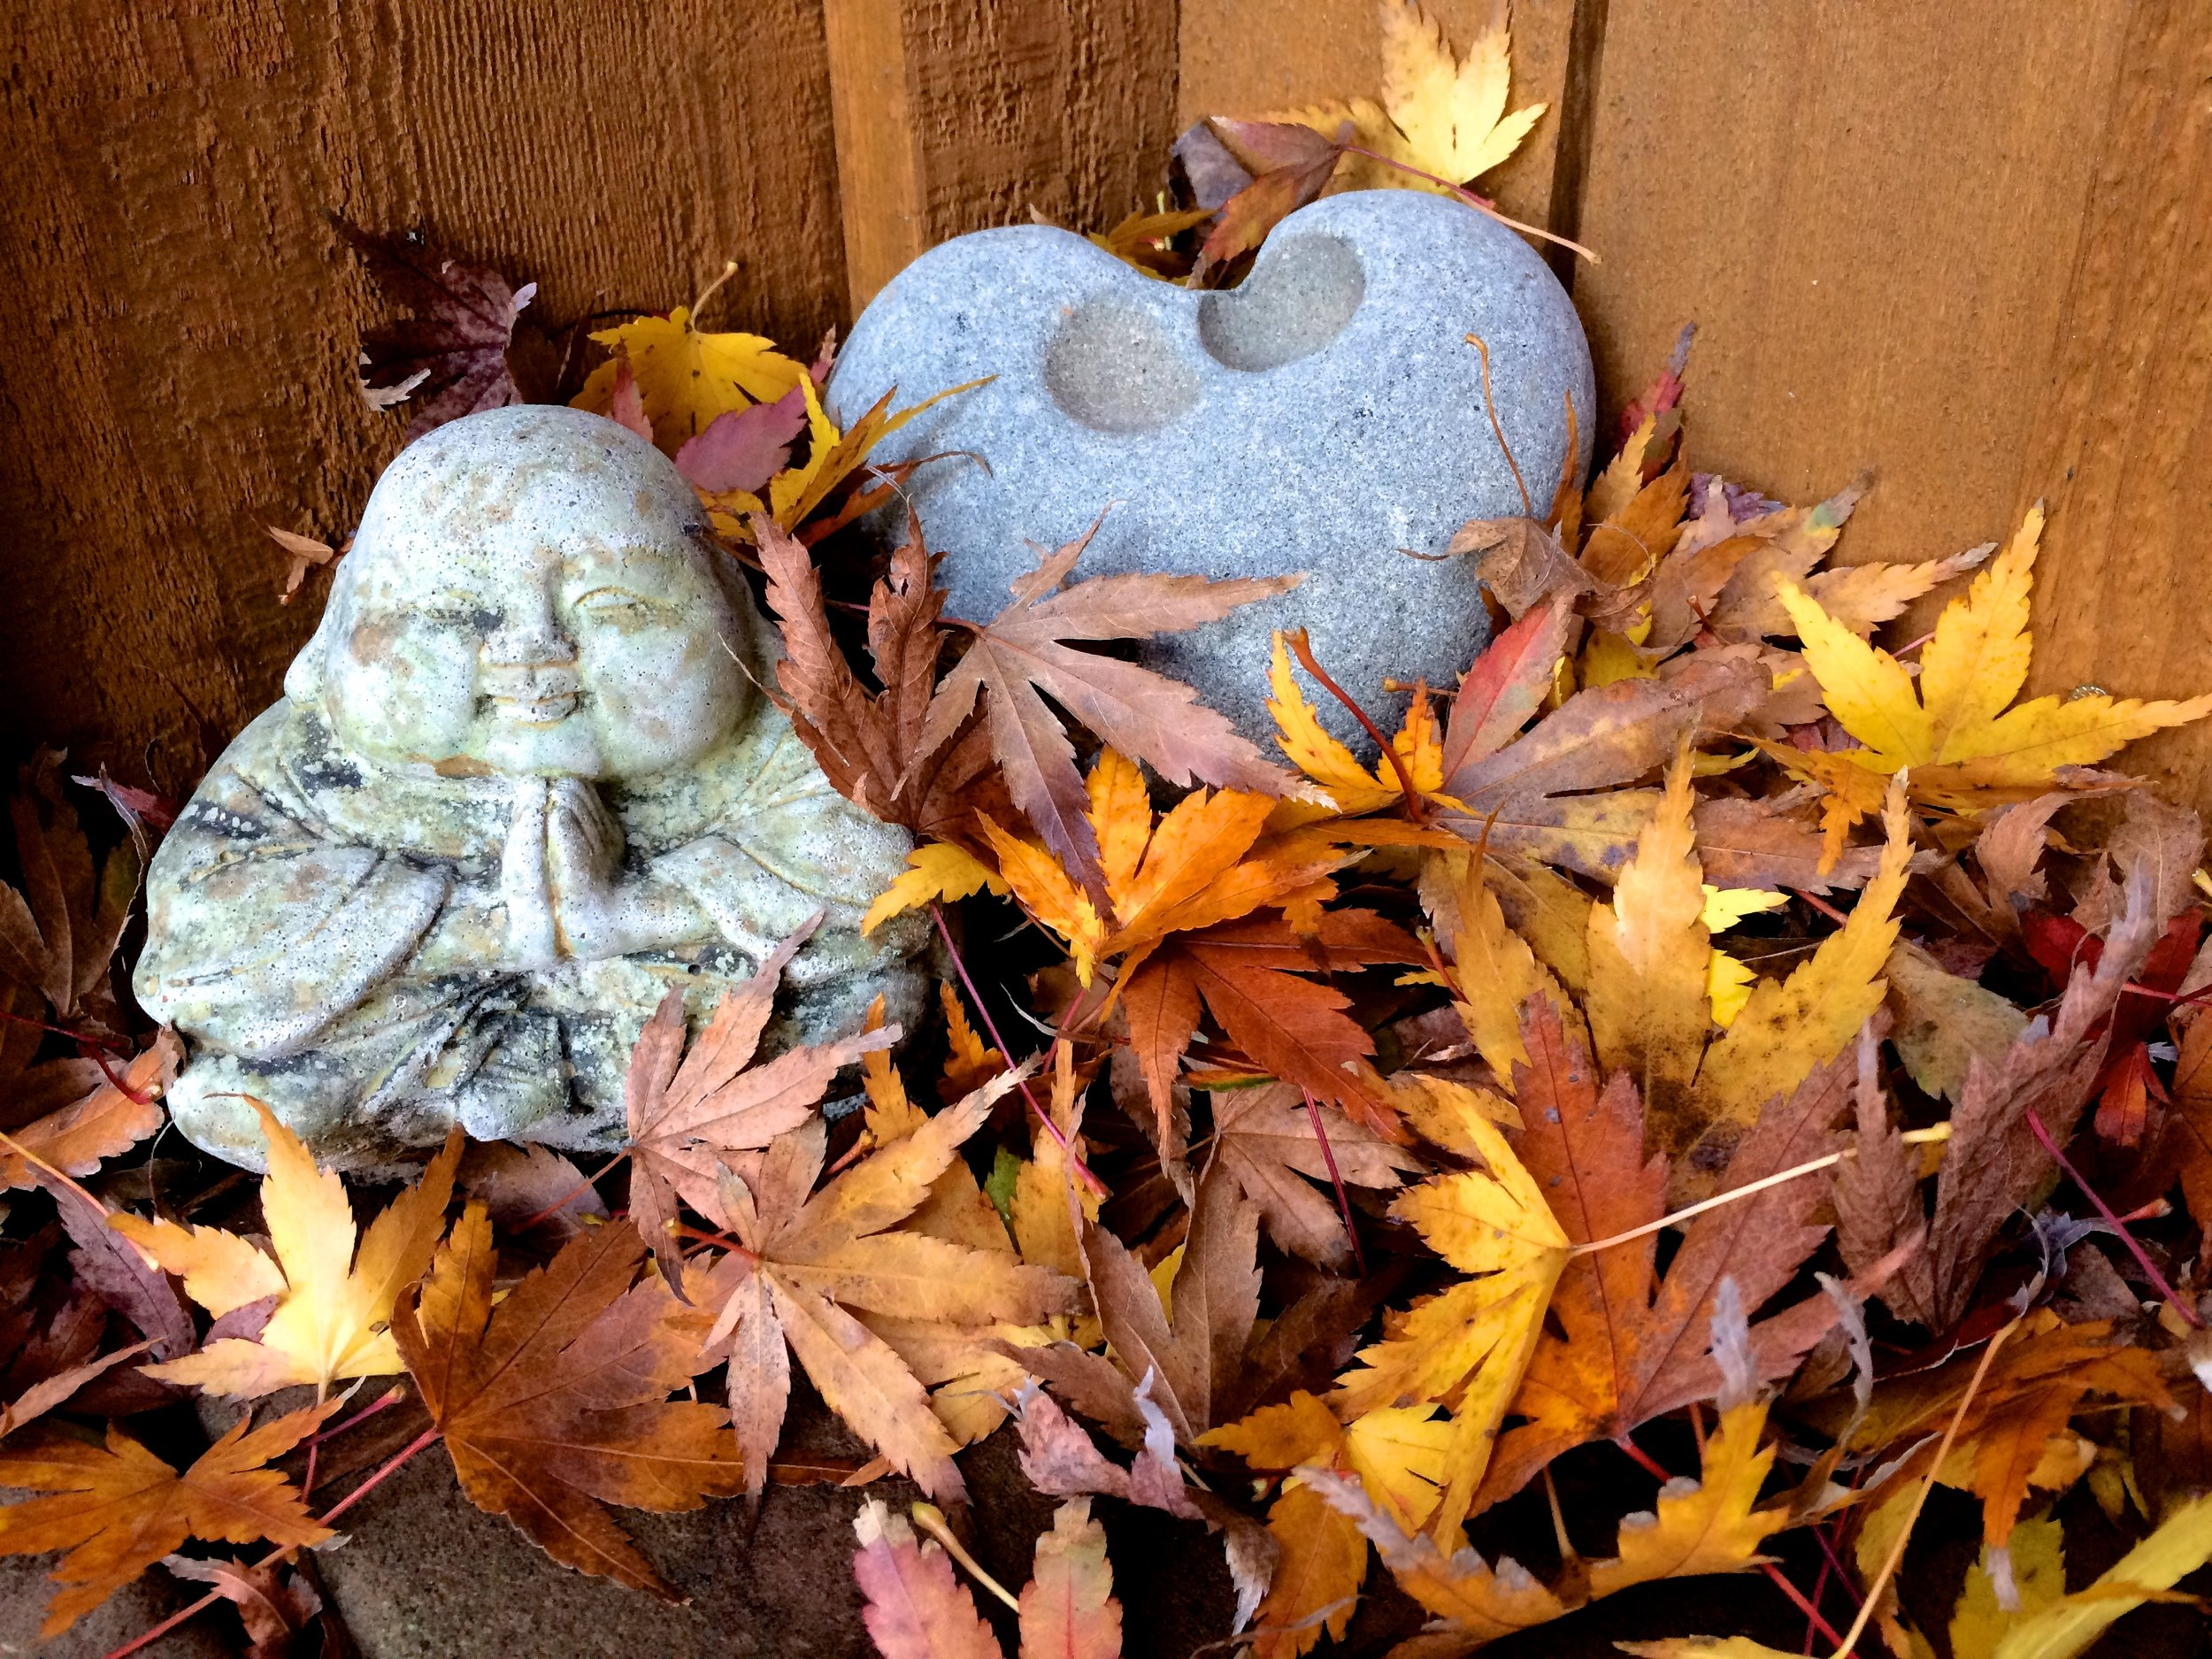 Smiling Buddha contemplating the arrival of fall.